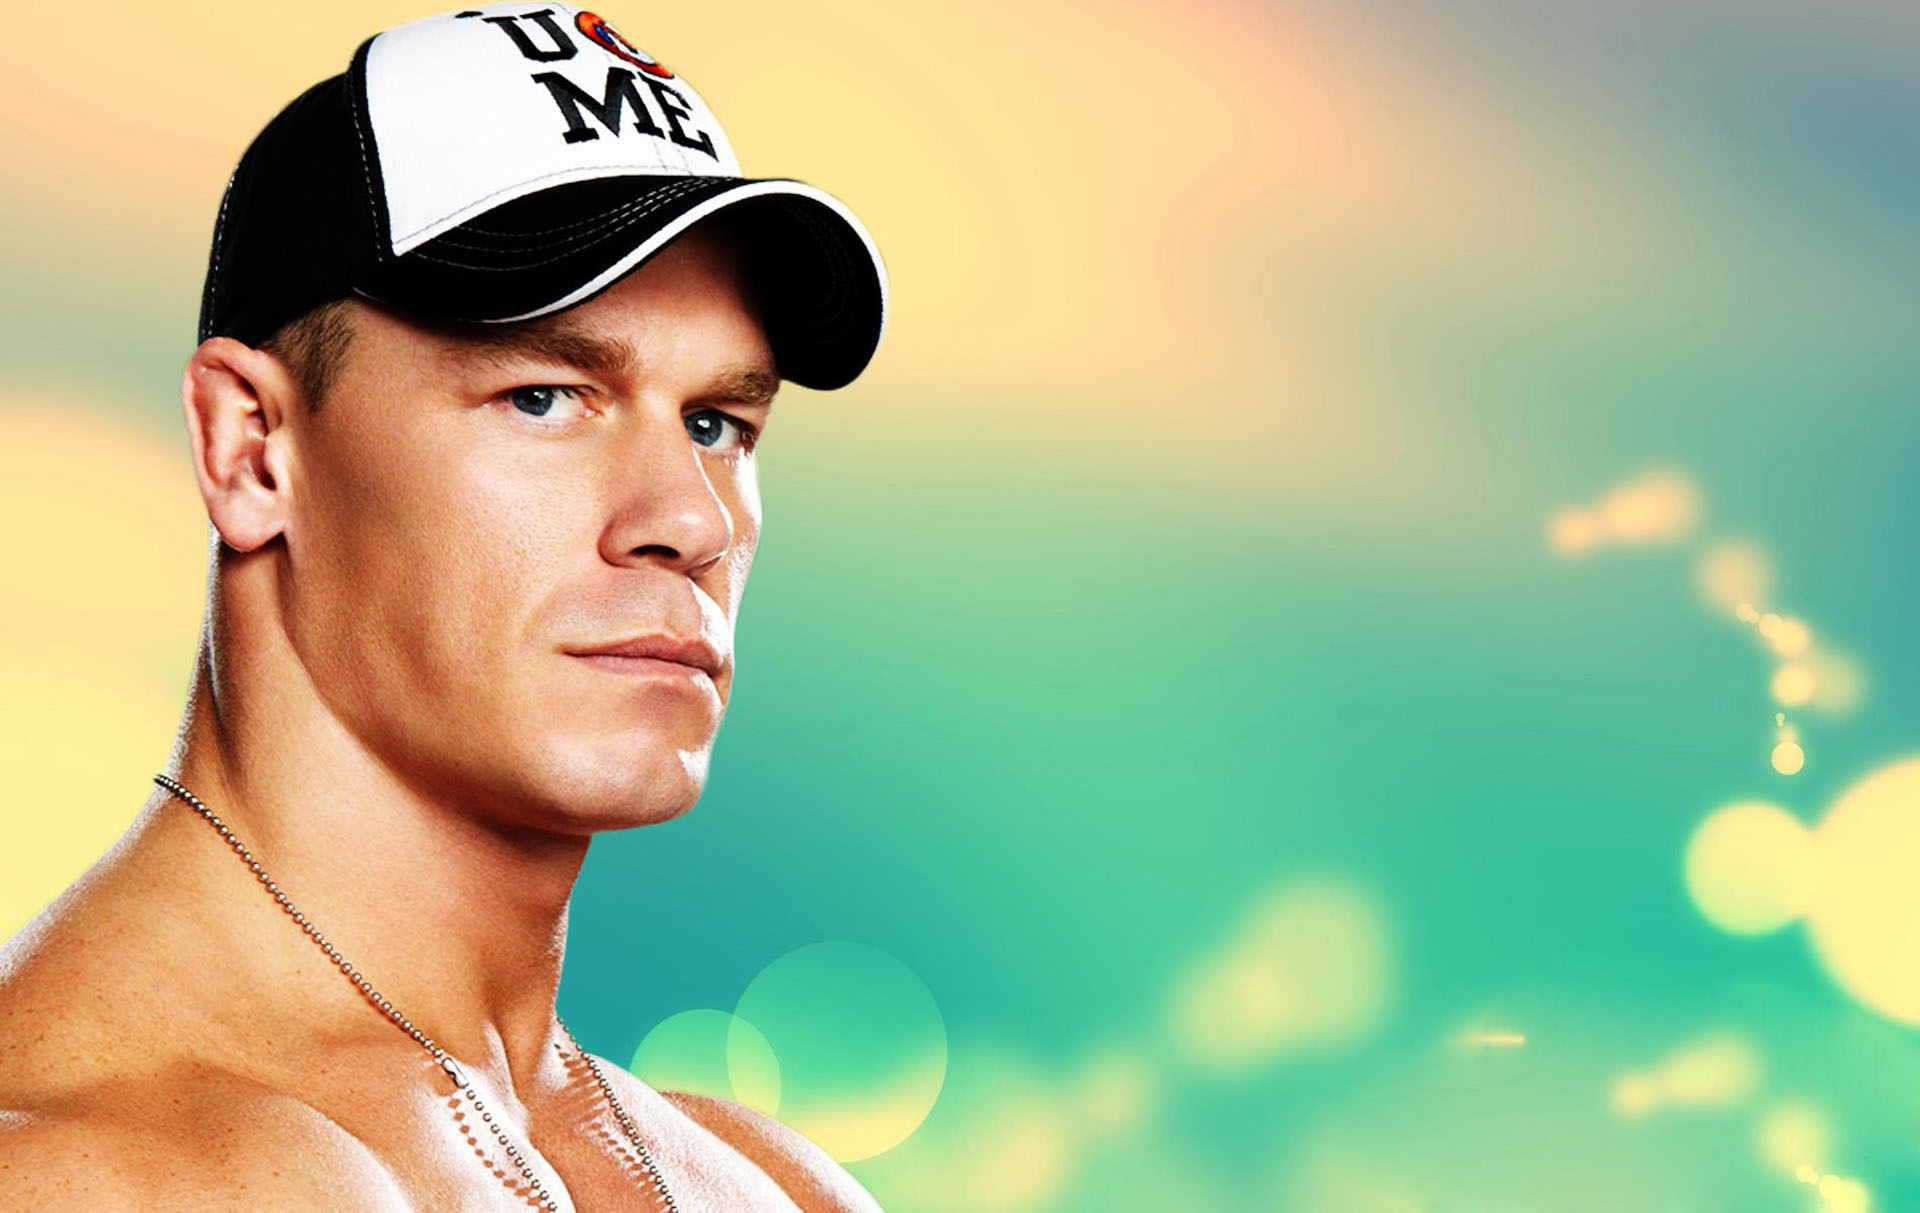 john cena wallpaper mobile HD Desktop Wallpapers 4k HD